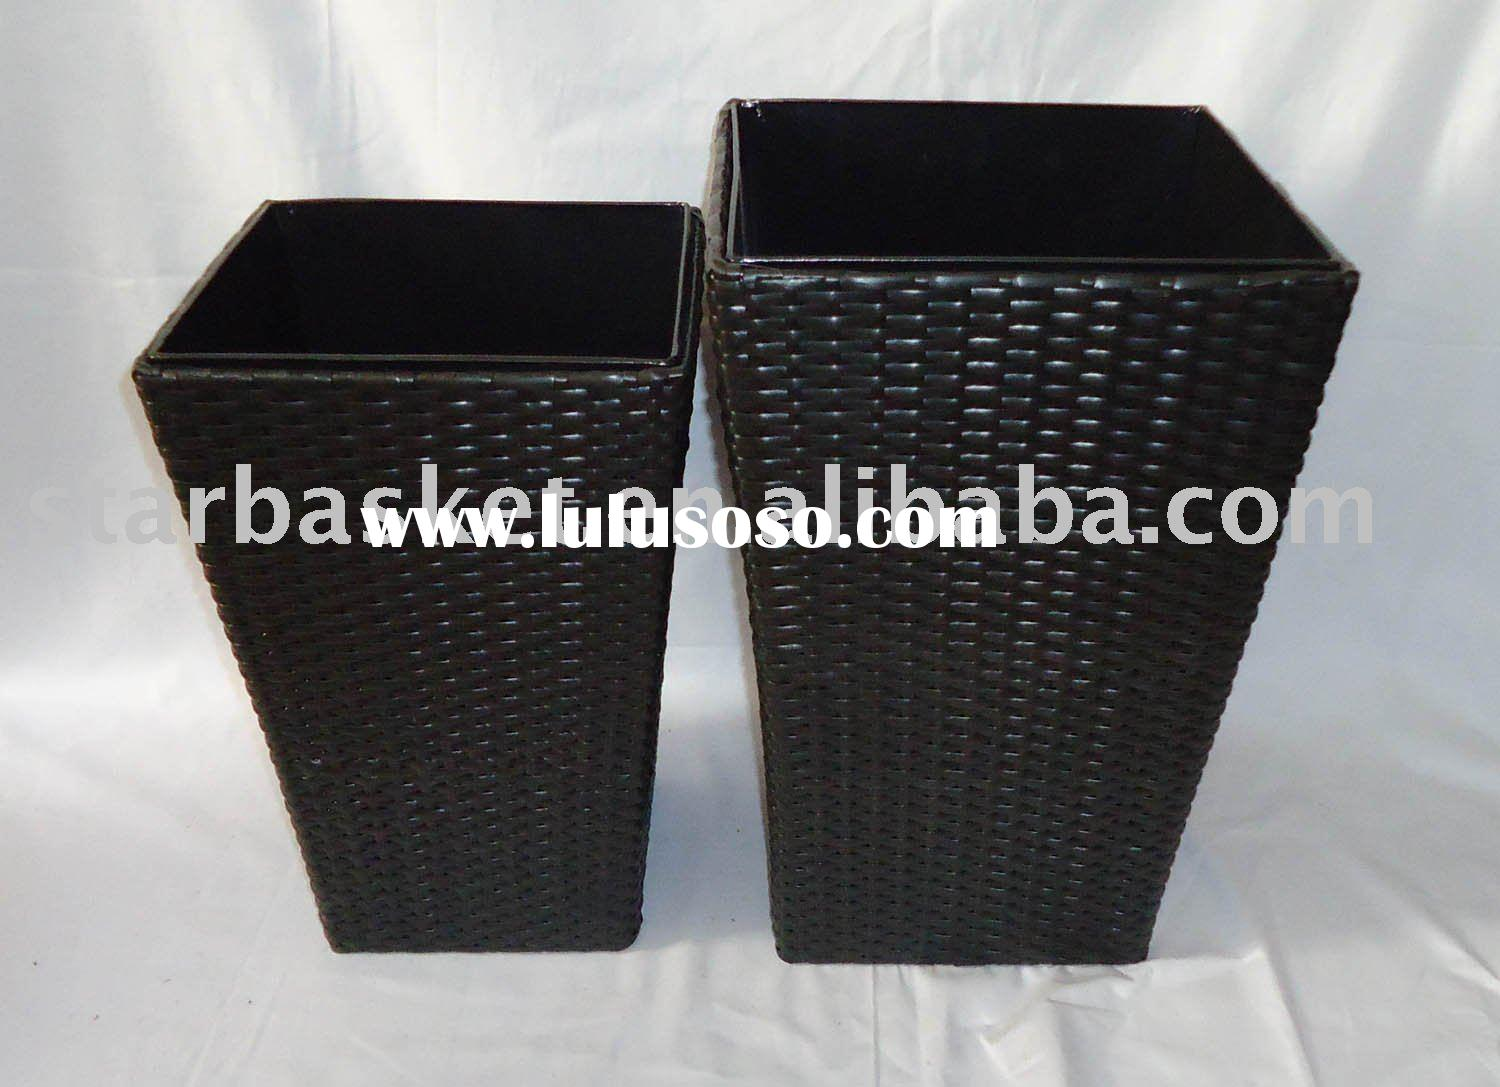 square plastic planter pot with zinc pot inside 10K1434